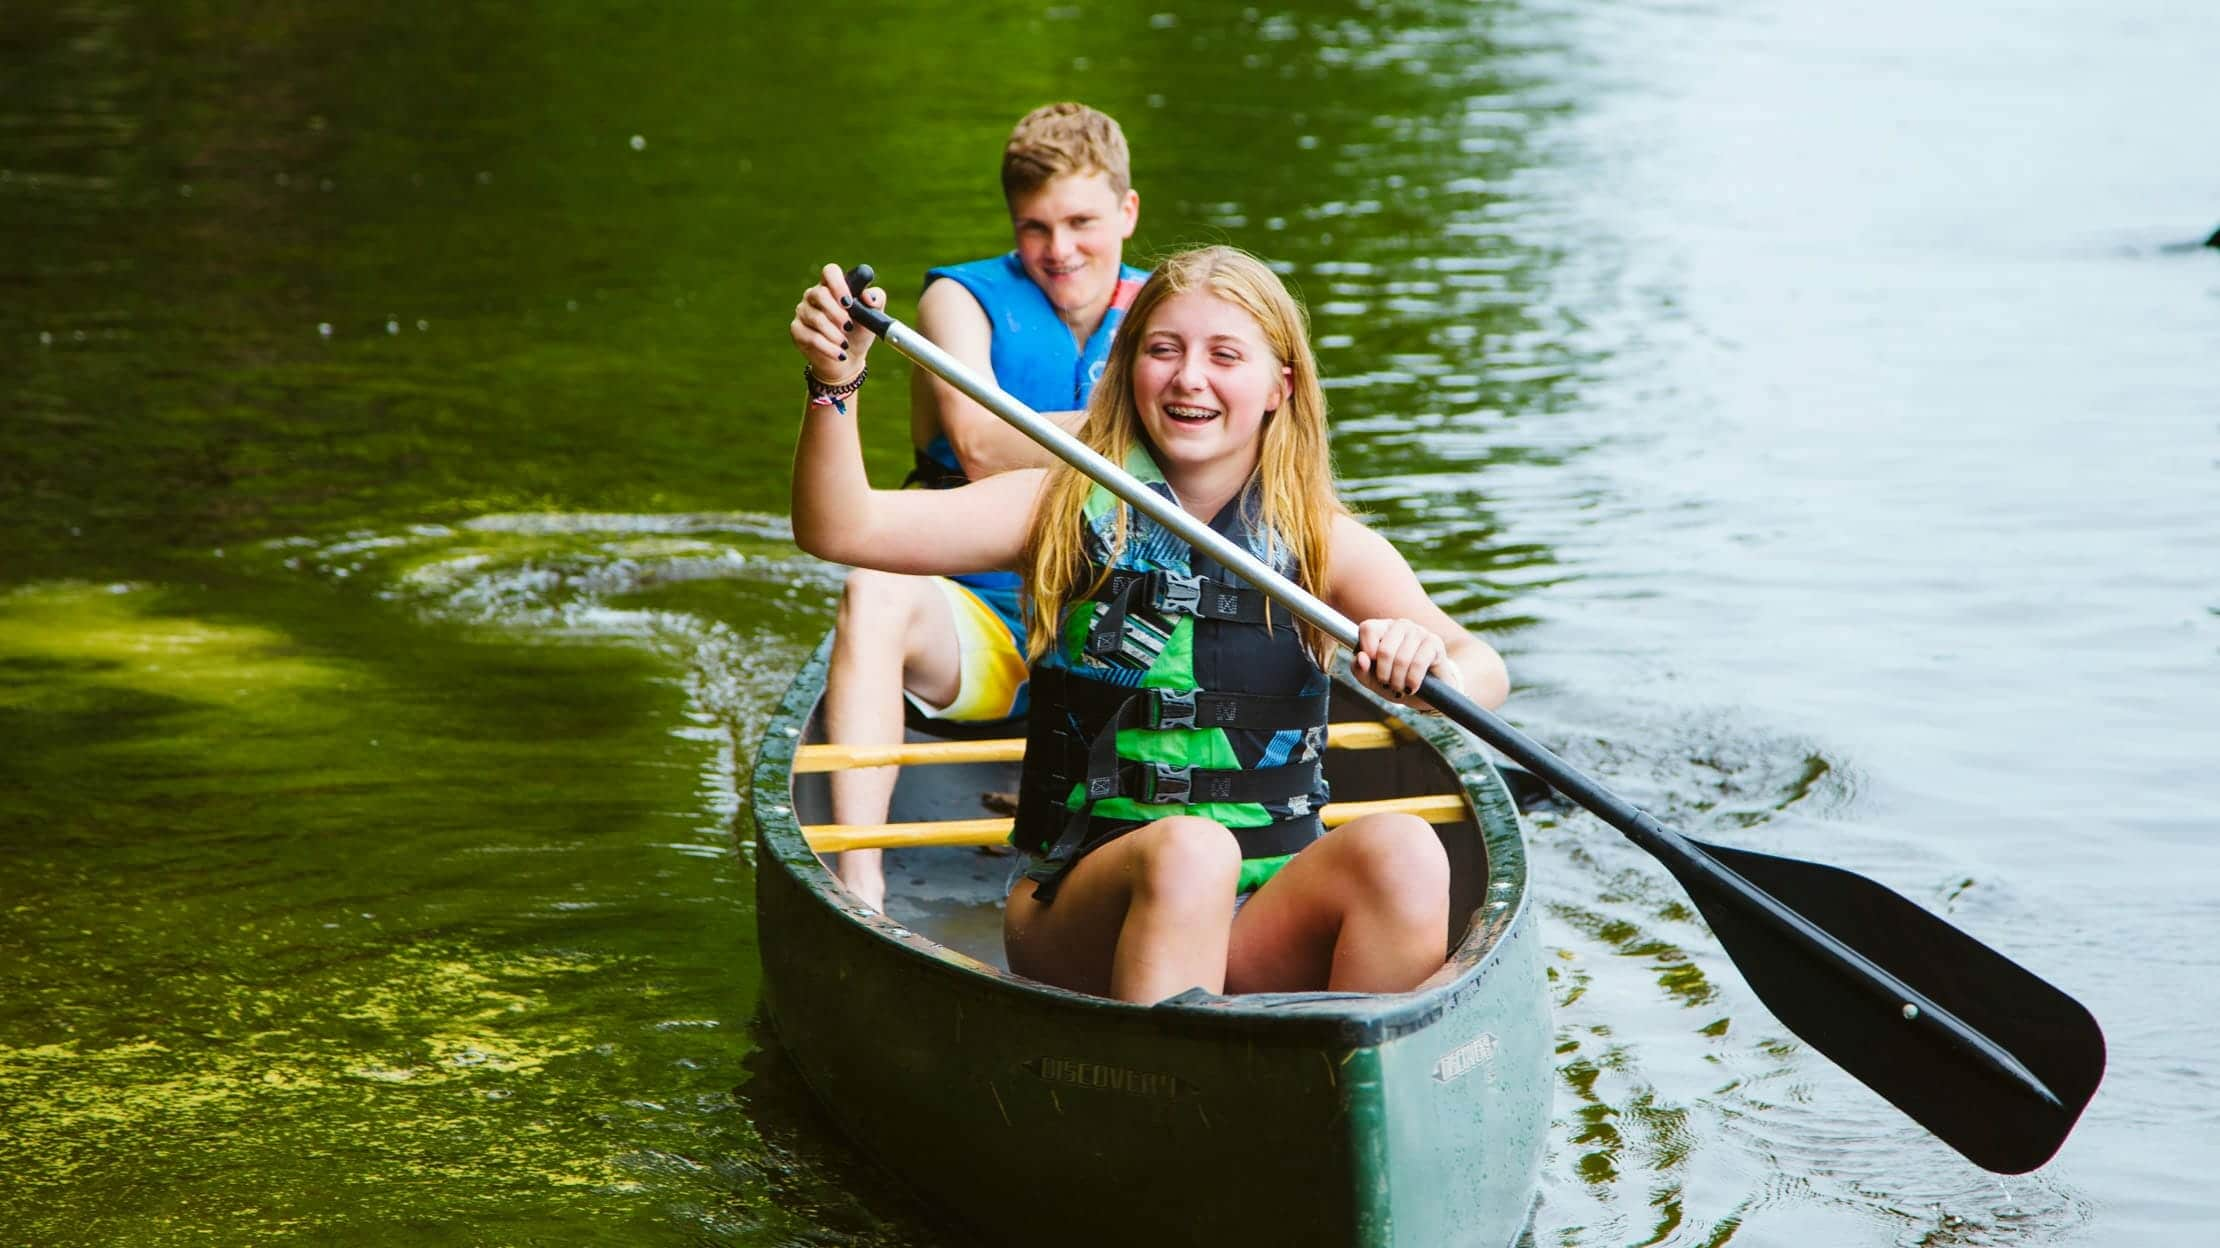 Two campers canoeing on a lake